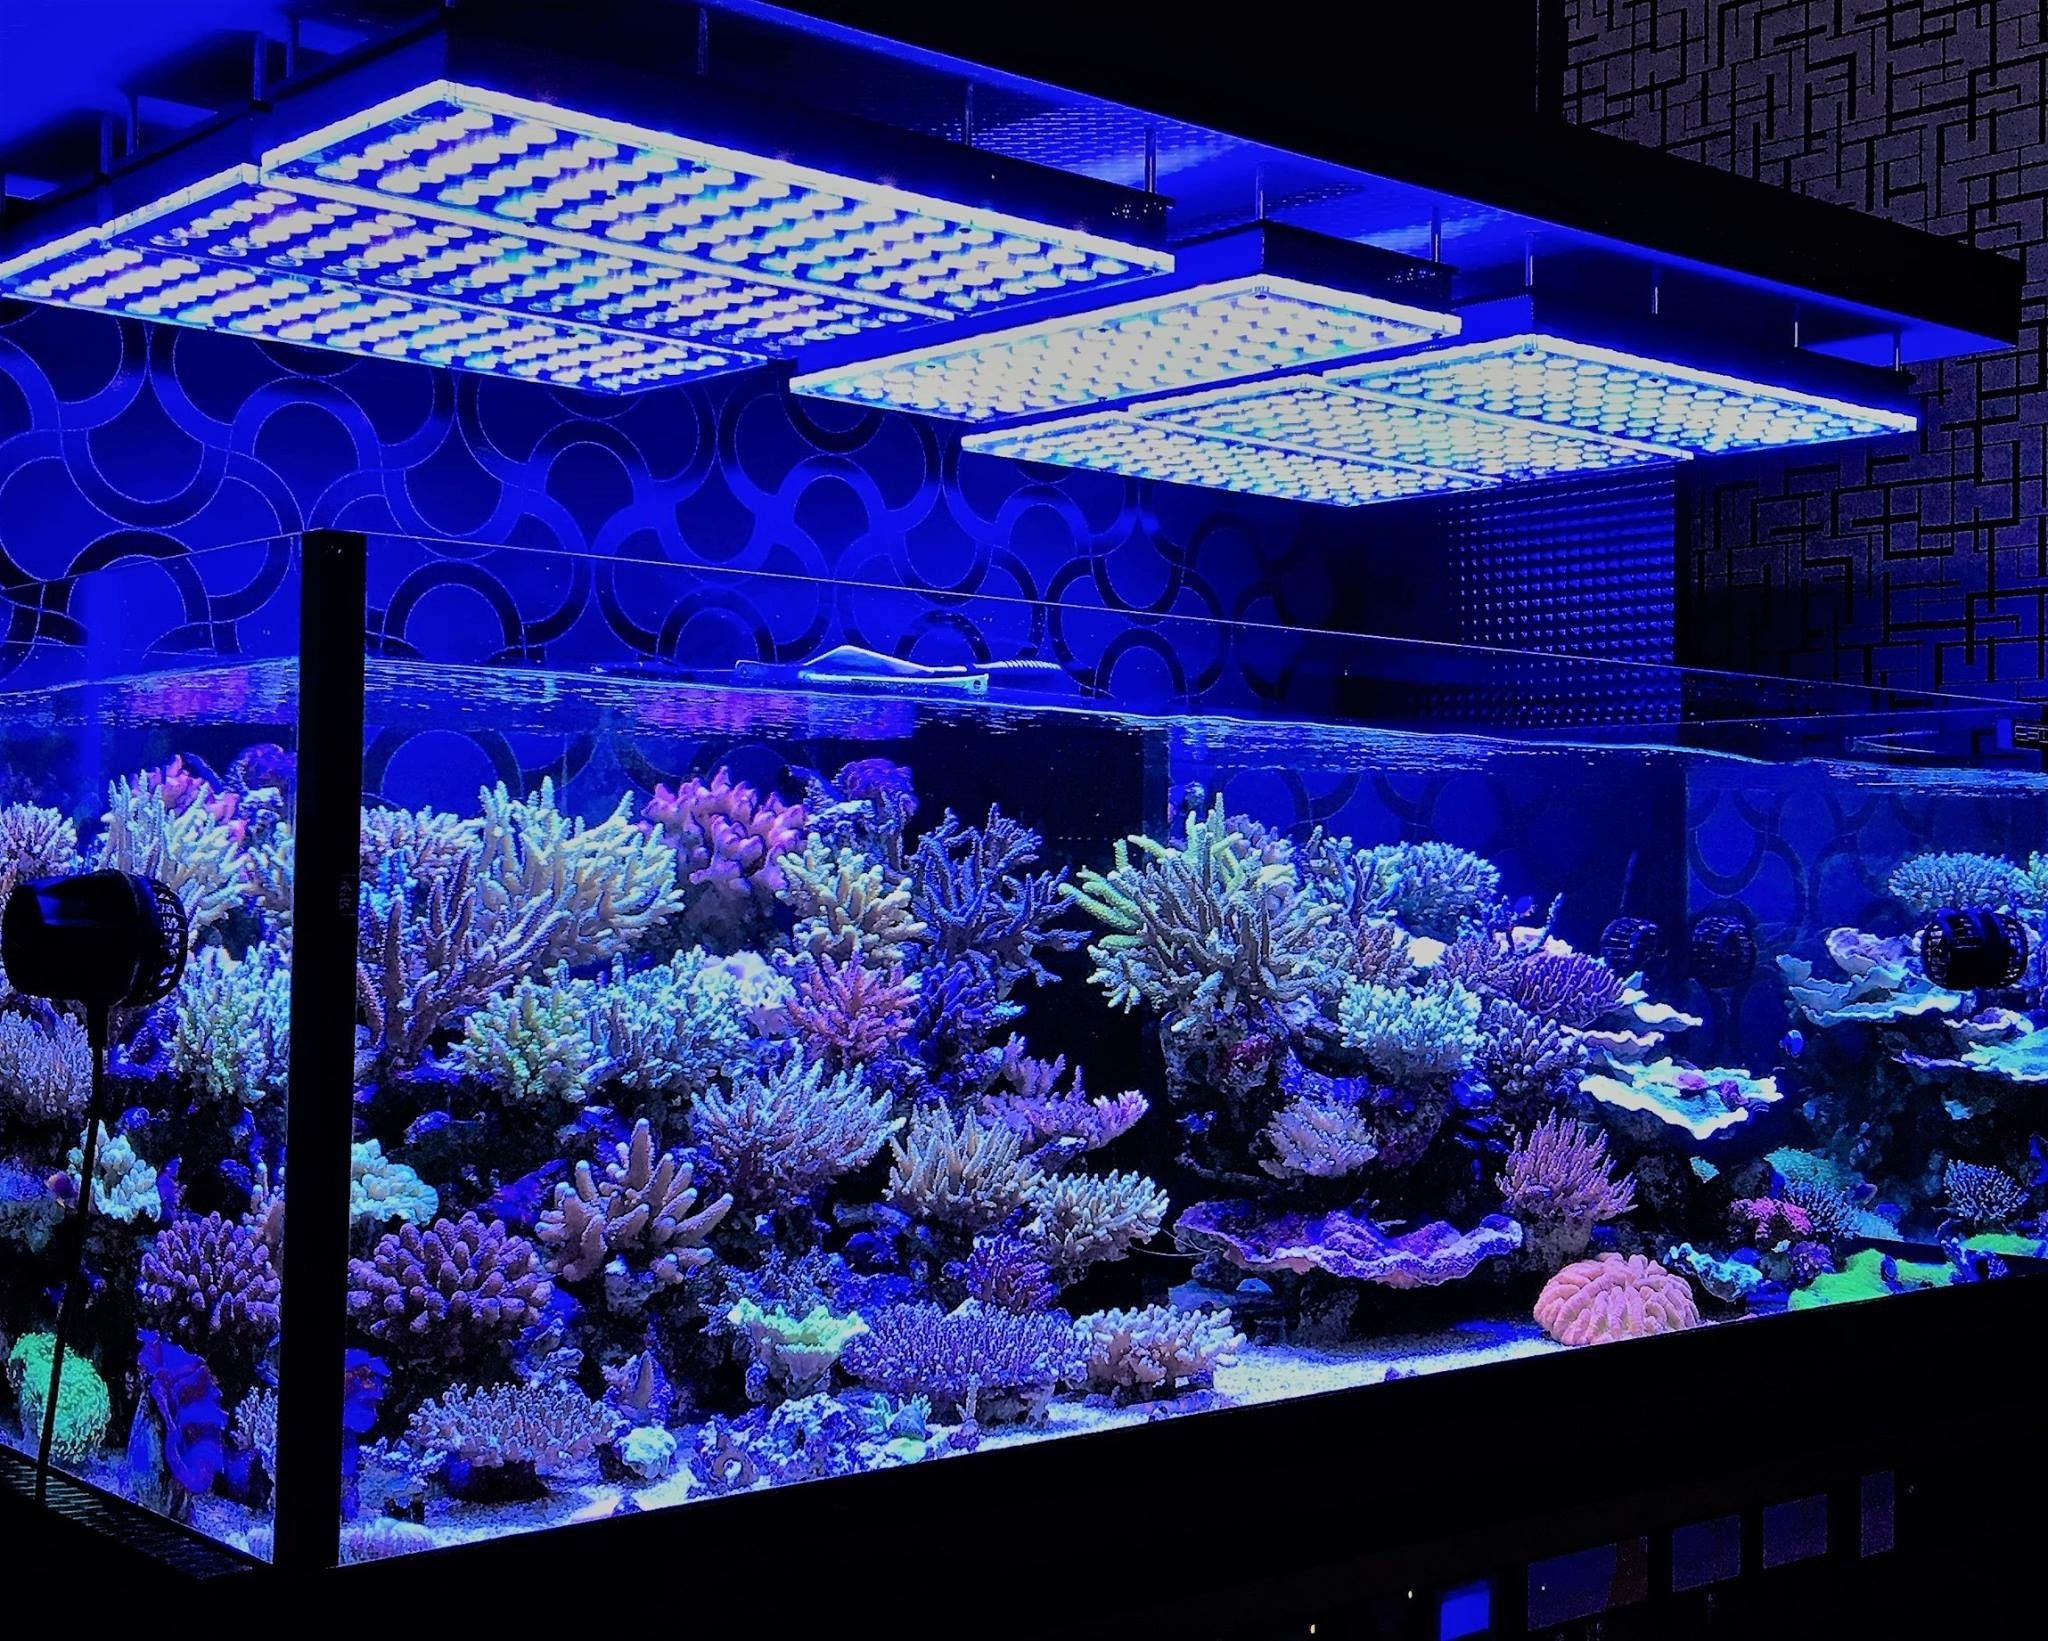 aquarium ilumination-reef corals-japan